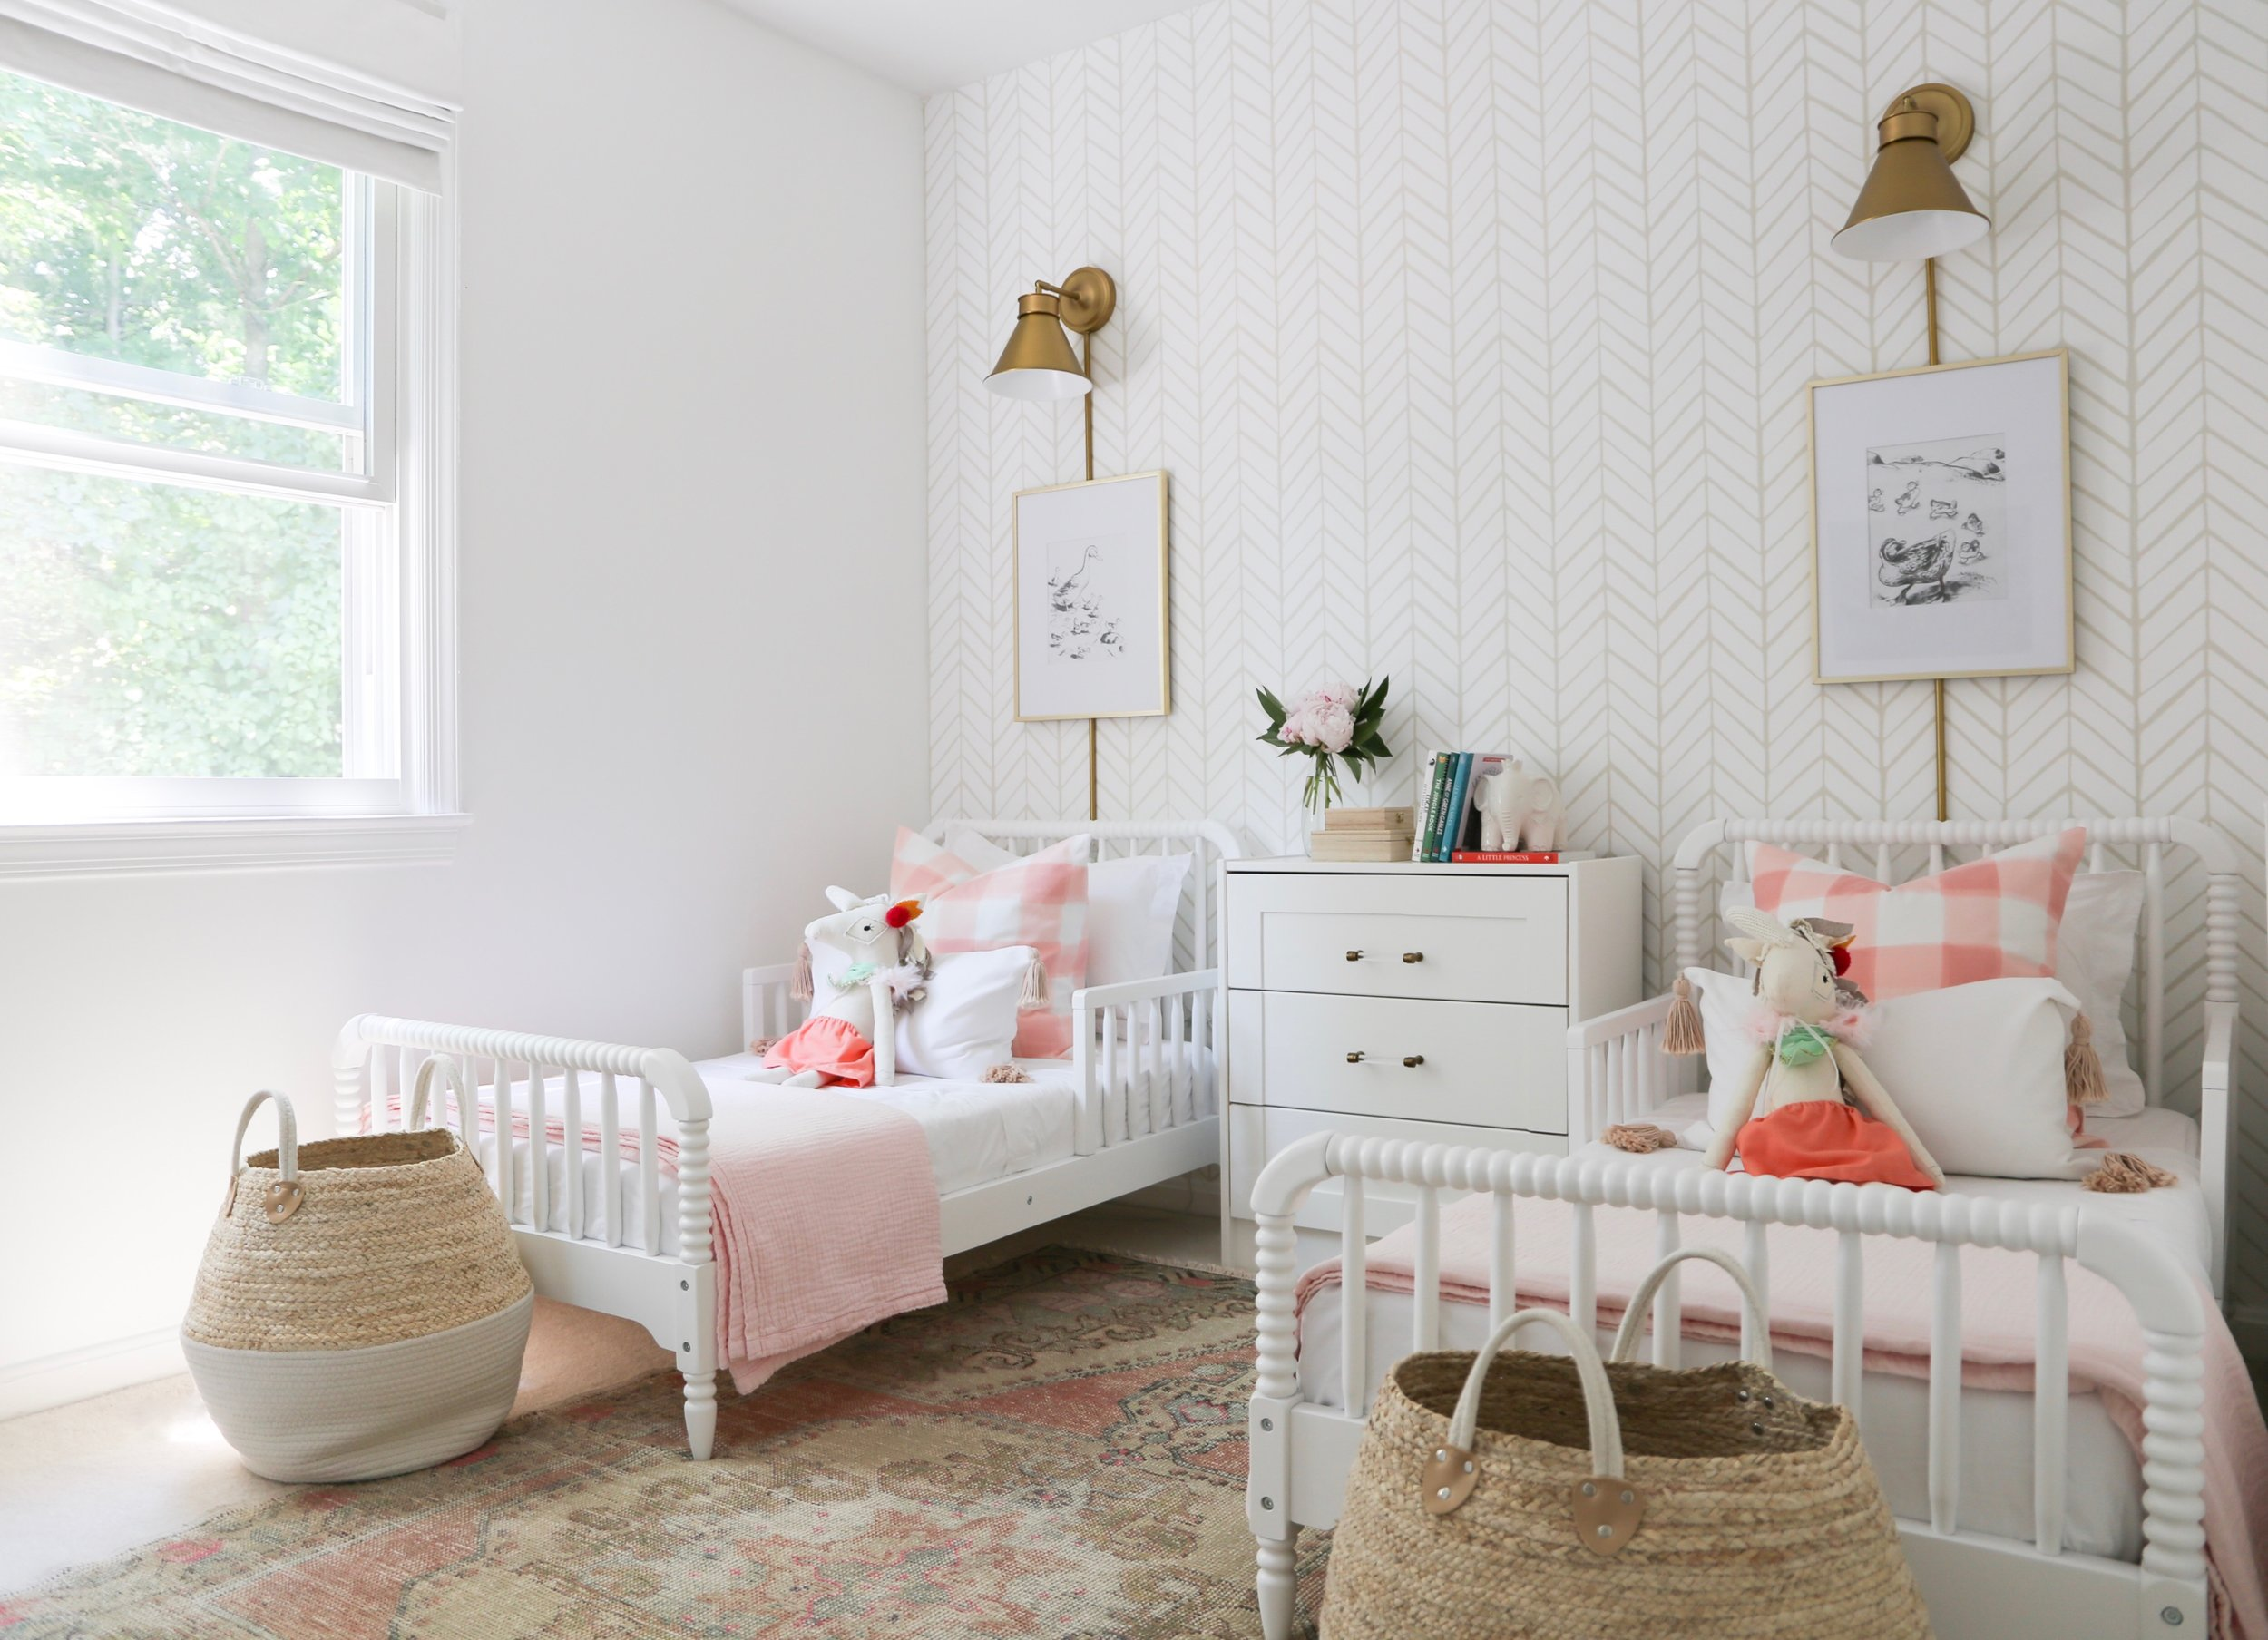 Inspiration for Girls' Bedroom - Guest Participant of the One Room Challenge - That Homebird Life Blog